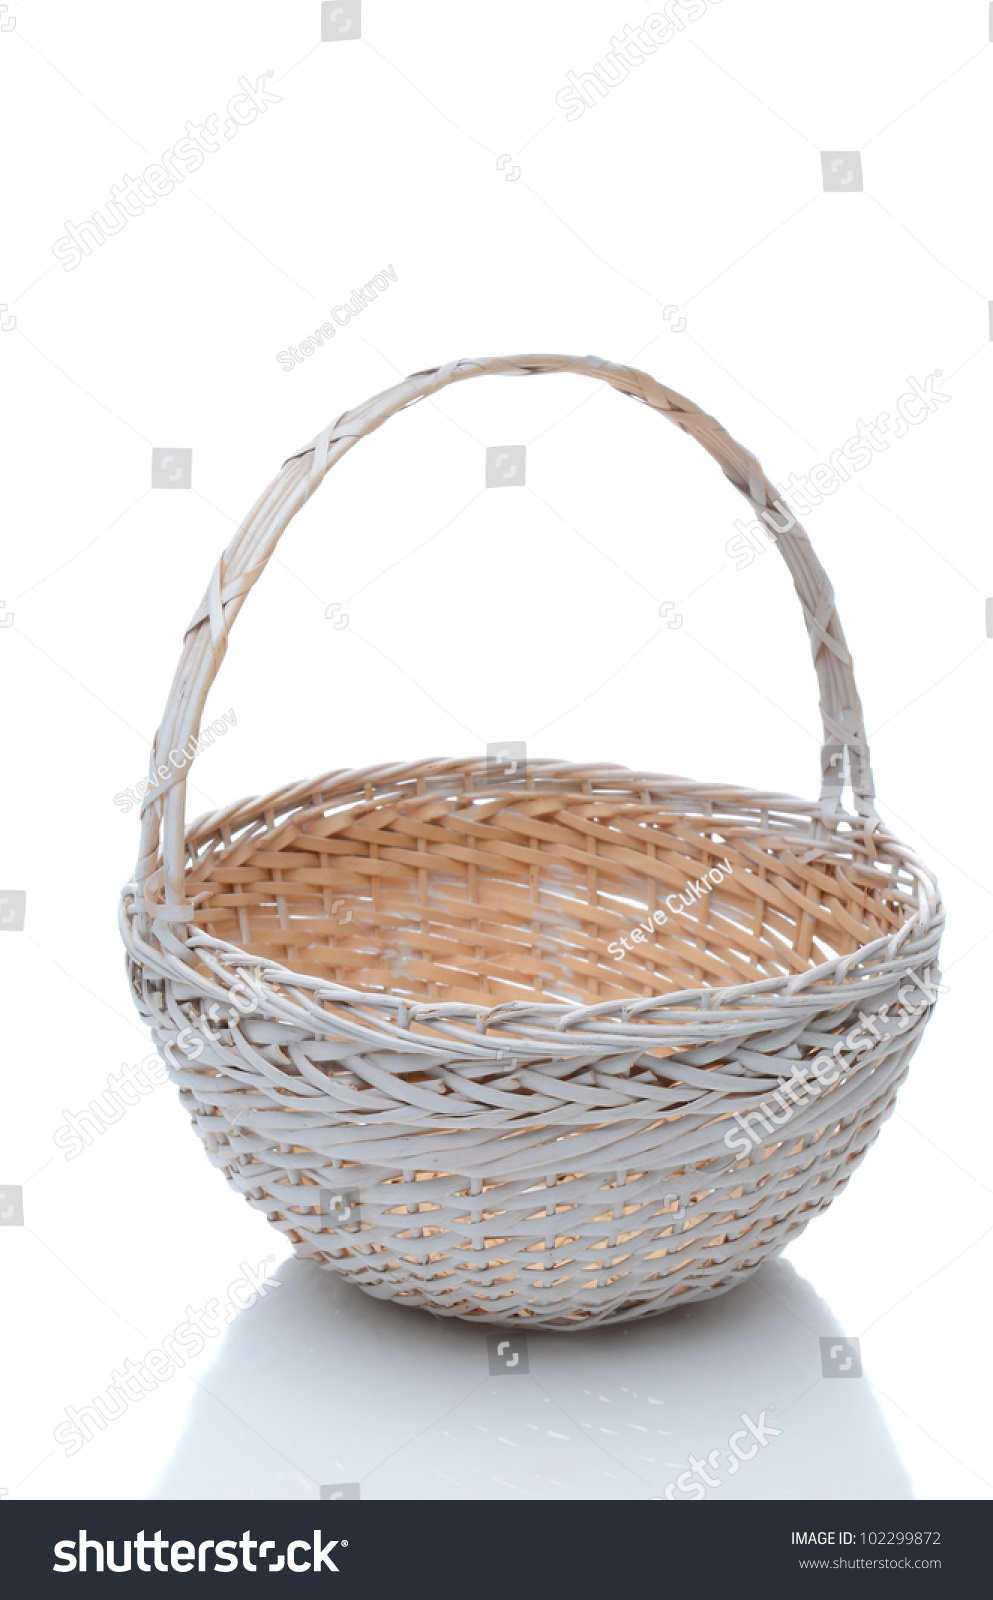 White wicker baskets with handle - Round White Wicker Basket With Handle Isolated On A White Background With Slight Reflection